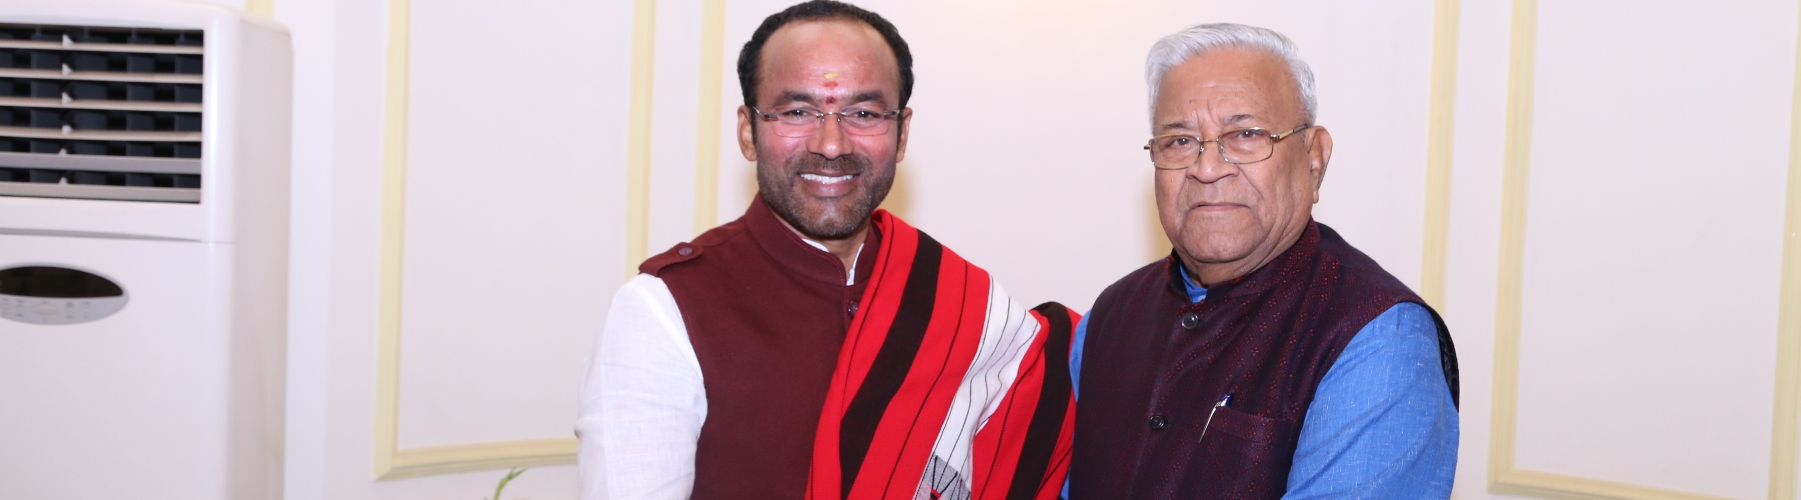 The Governor of Nagaland, Shri Padmanabha Acharya, meets Union Minister of State for Home Affairs, G Kishan Reddy, on July 15, 2019, in New Delhi.